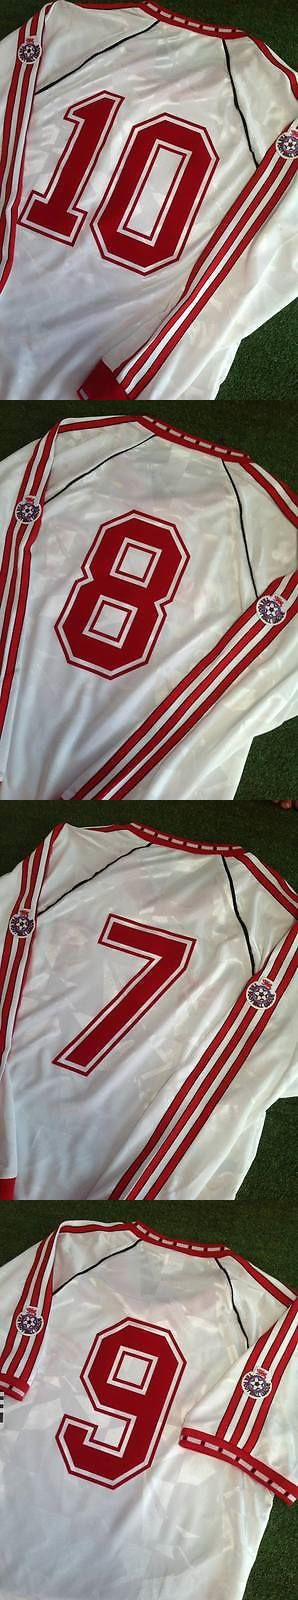 Soccer-Other 2885: Manchester United Away Final Cup 1991 Winner Retro Shirt -> BUY IT NOW ONLY: $38.9 on eBay!